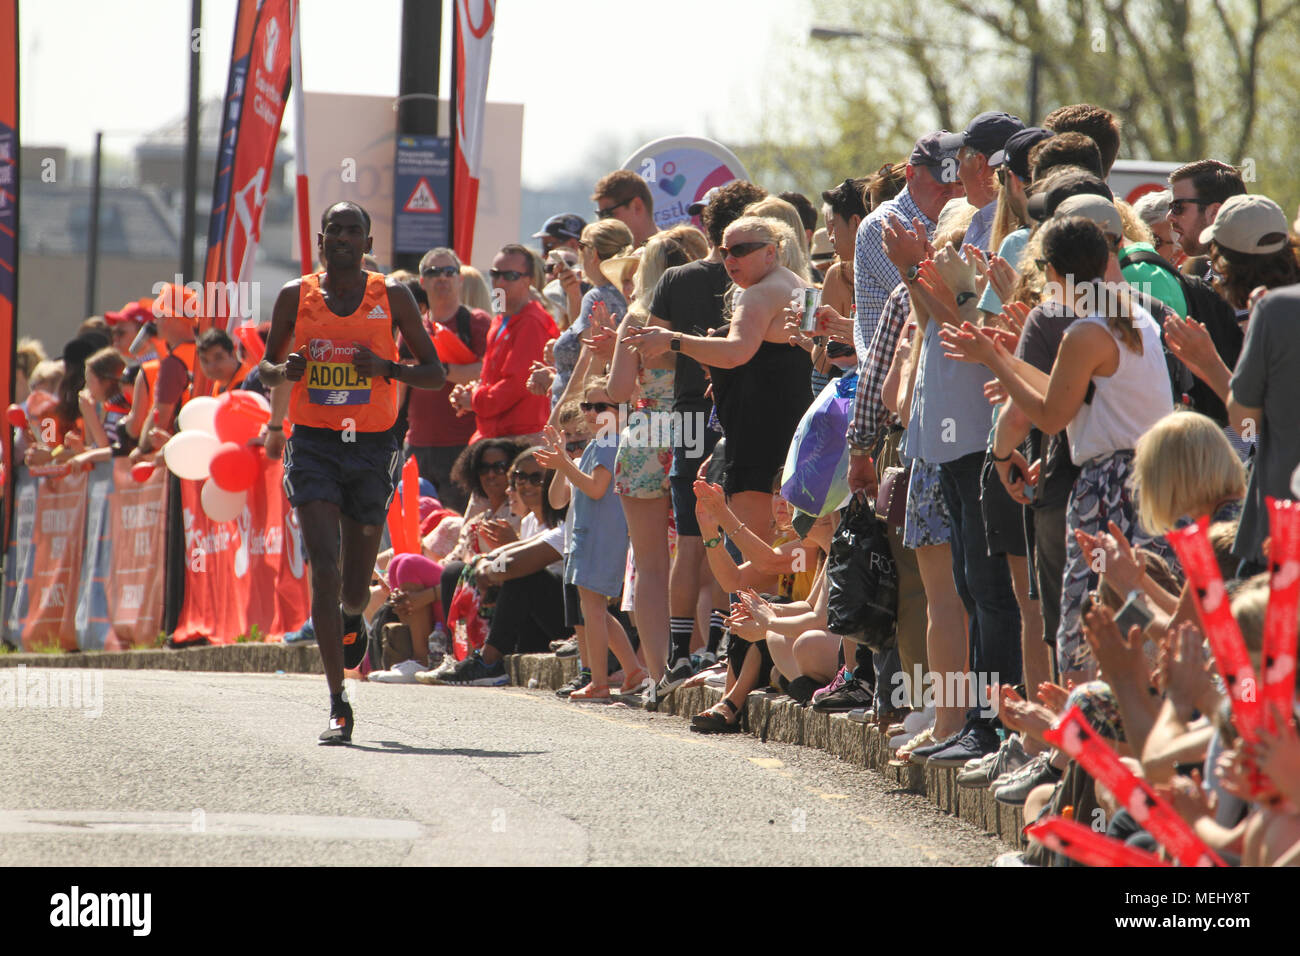 London, United Kingdom - April 22: Londoners turned up in therei droves to watch runners participate in the Virgin Money London Marathon on April 22, 2018. Over 40,000 are expected to start the 26.2 miles run from Greenwich to Westminster.© David Mbiyu/Alamy Live News - Stock Image